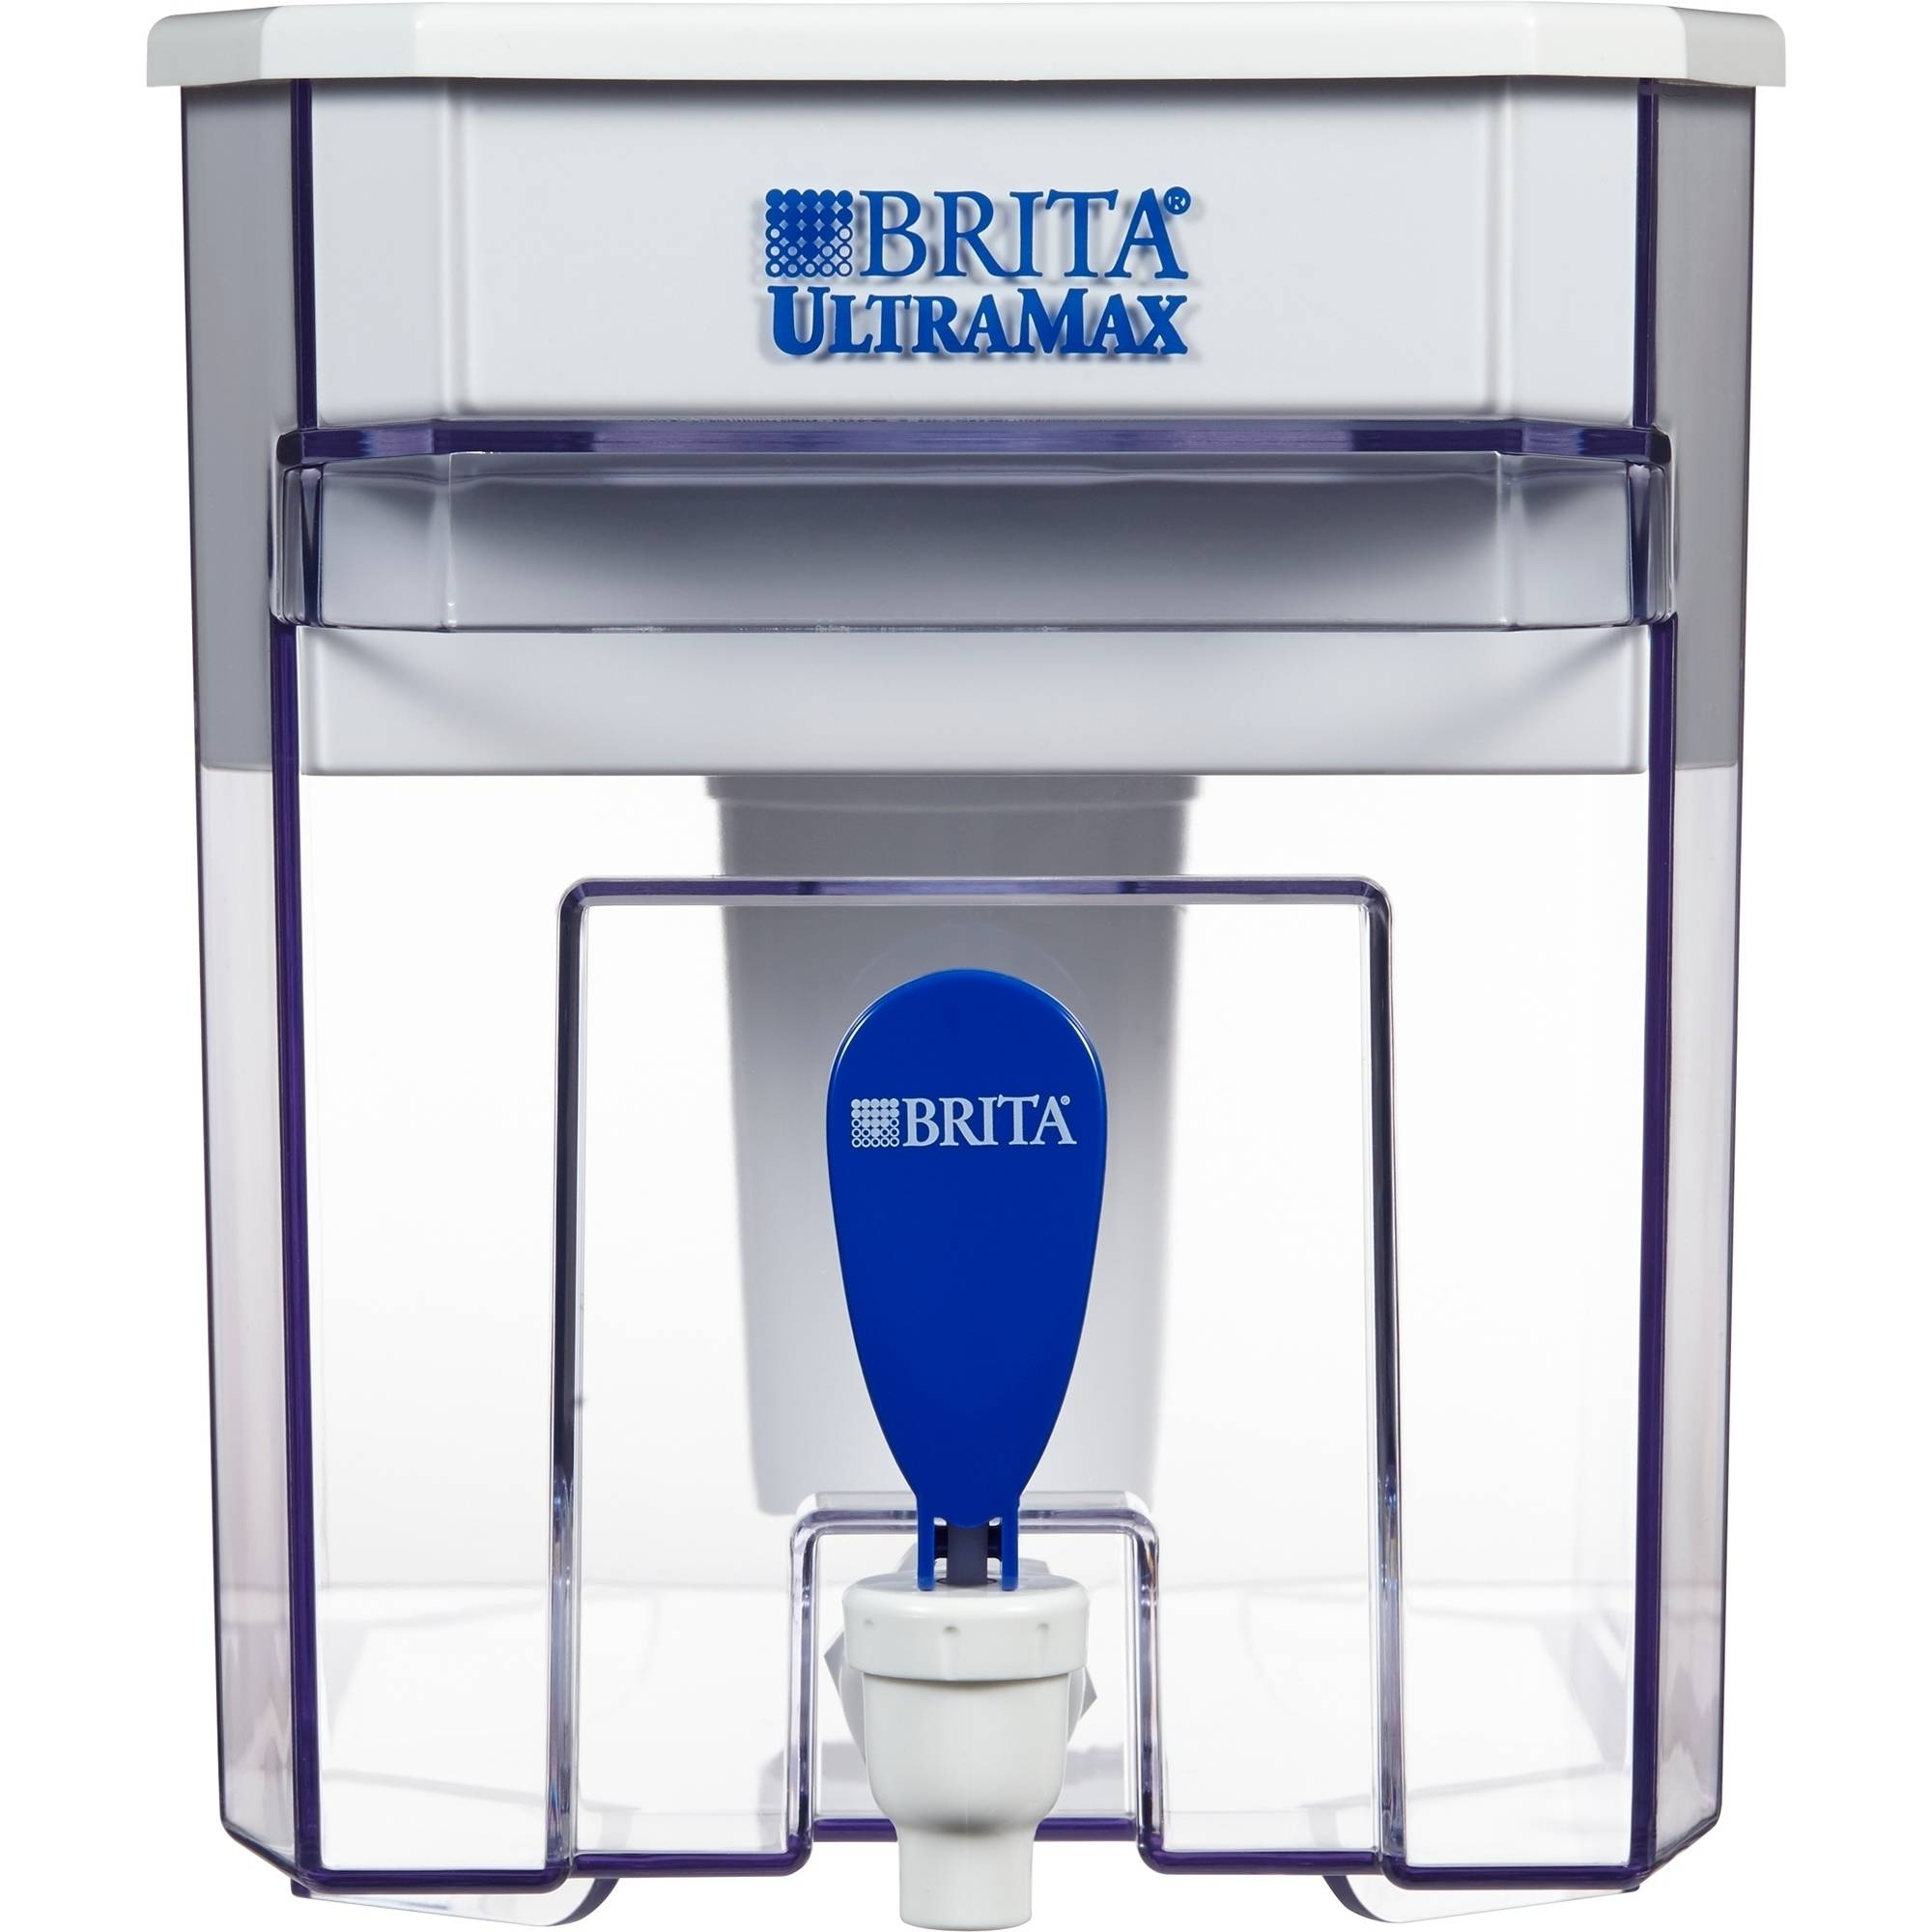 Brita UltraMax Water Filter Dispenser, White, 18 Cup, BPA Free